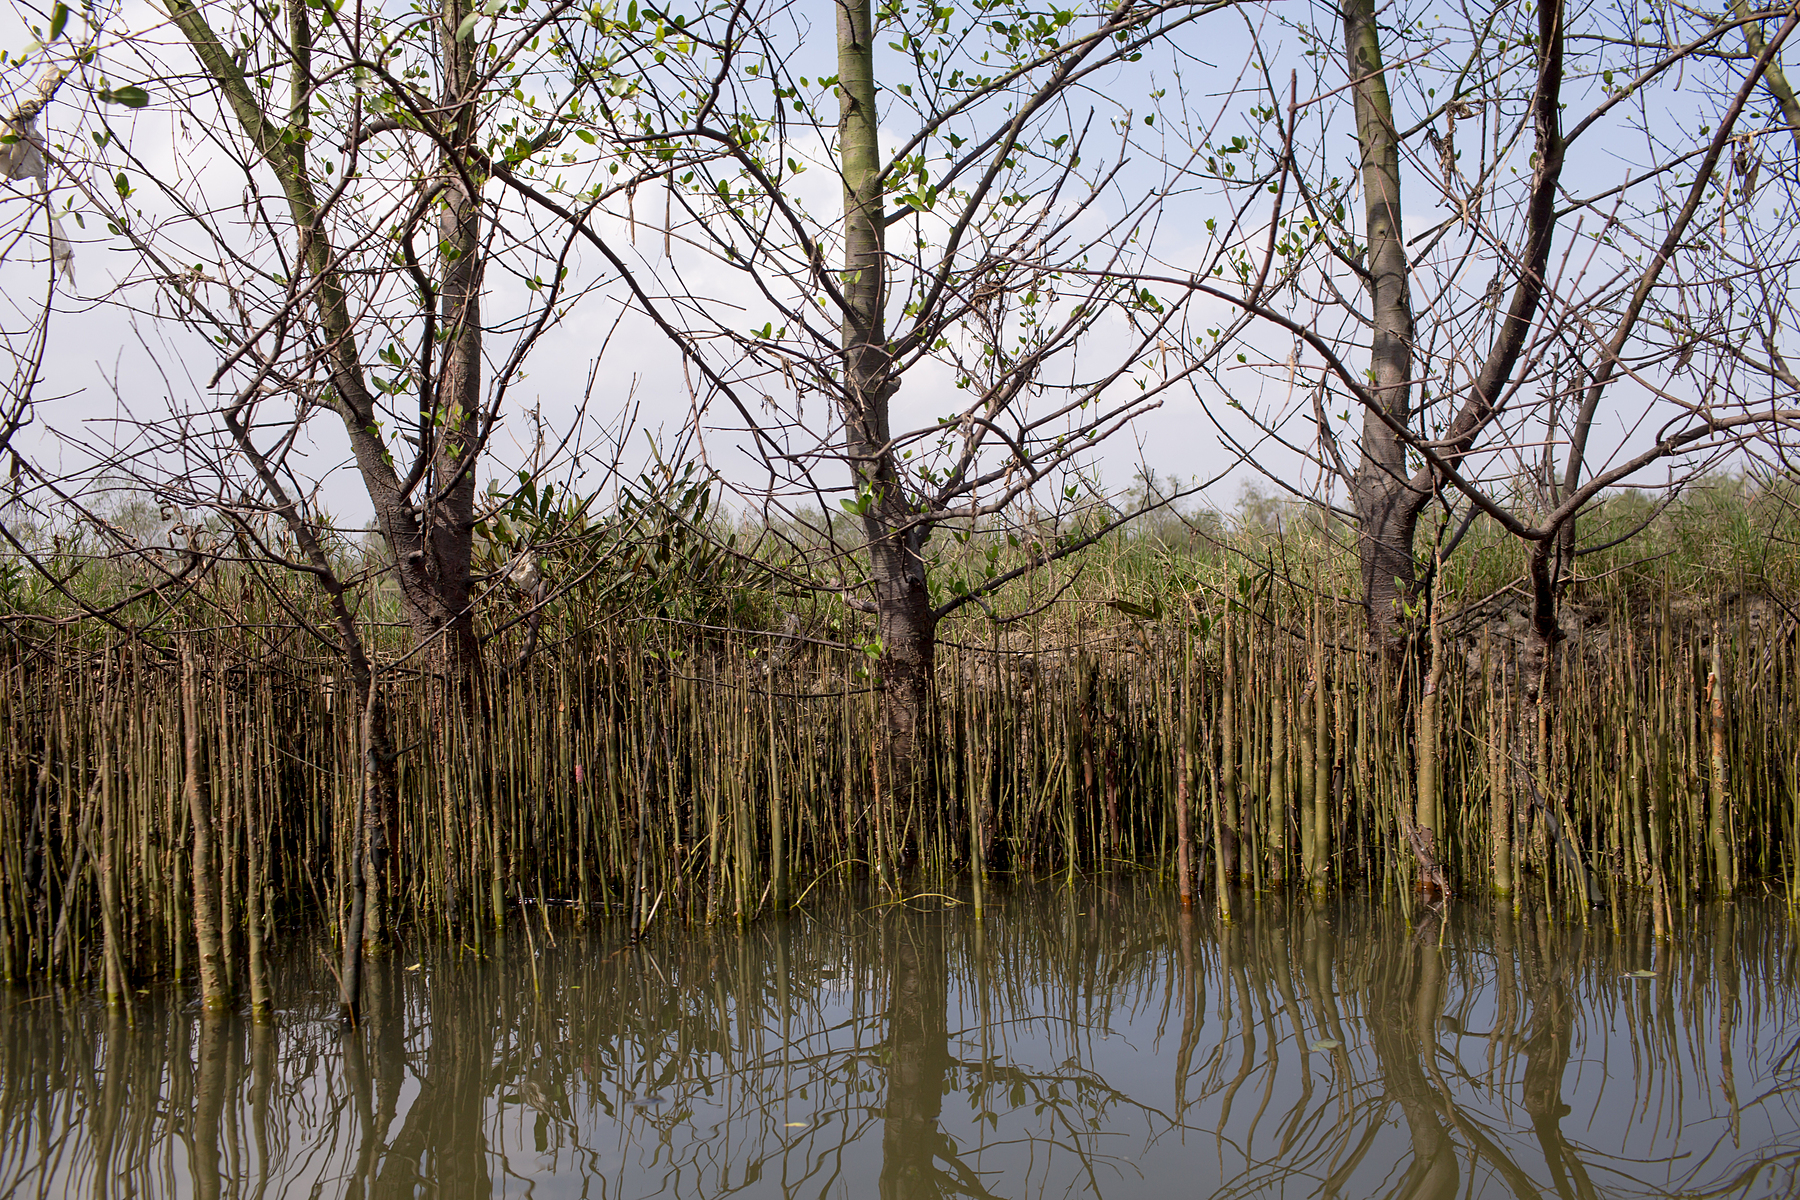 The bank of a river with thin shoots of sonneratia plants